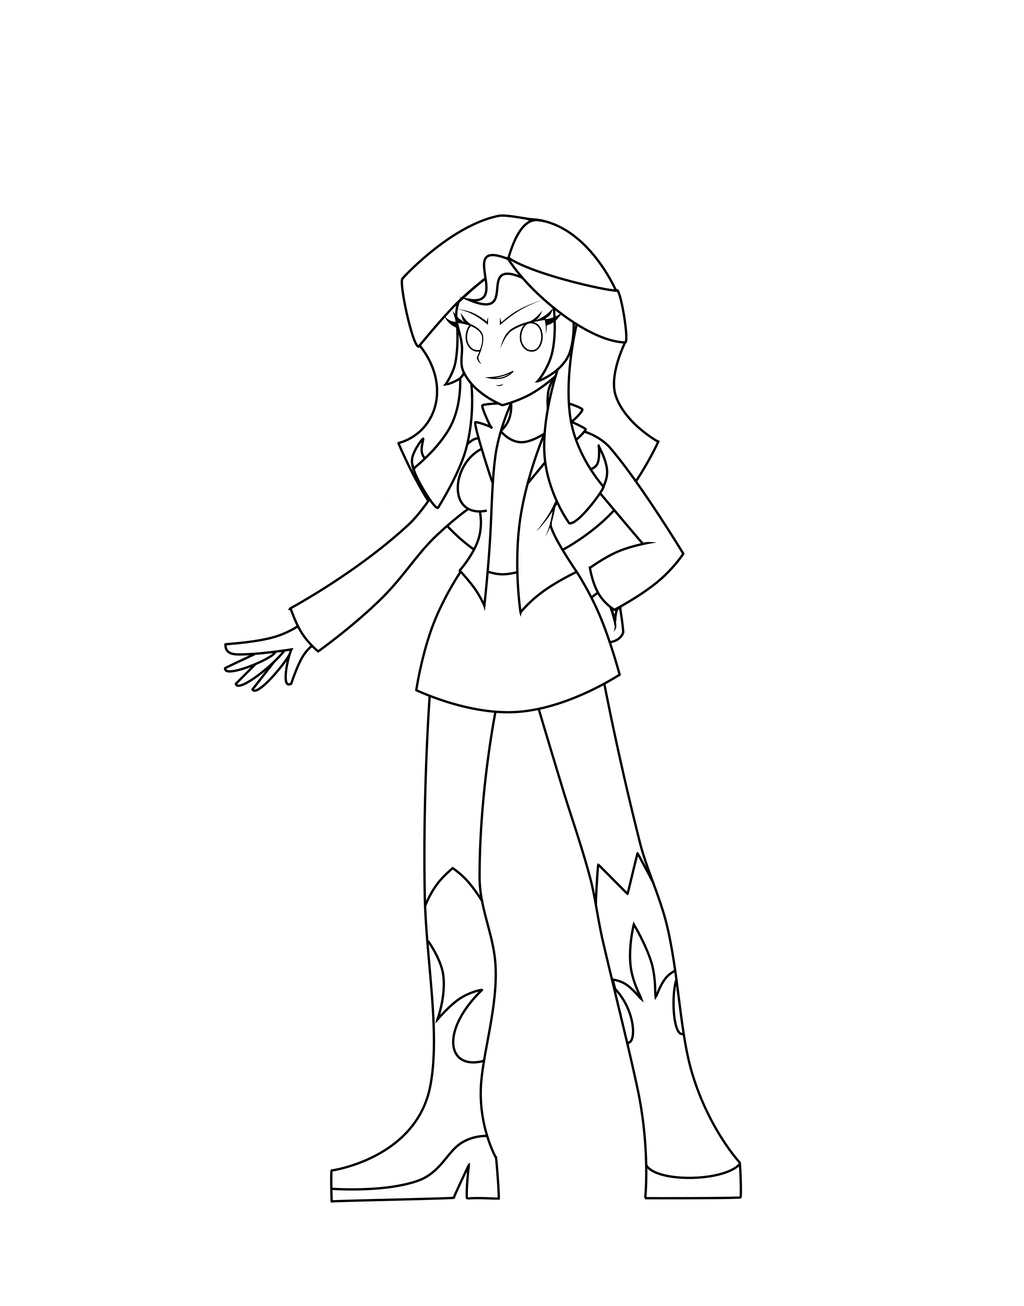 coloring art set equestria girls sunset shimmer lineart by darkengales on set coloring art